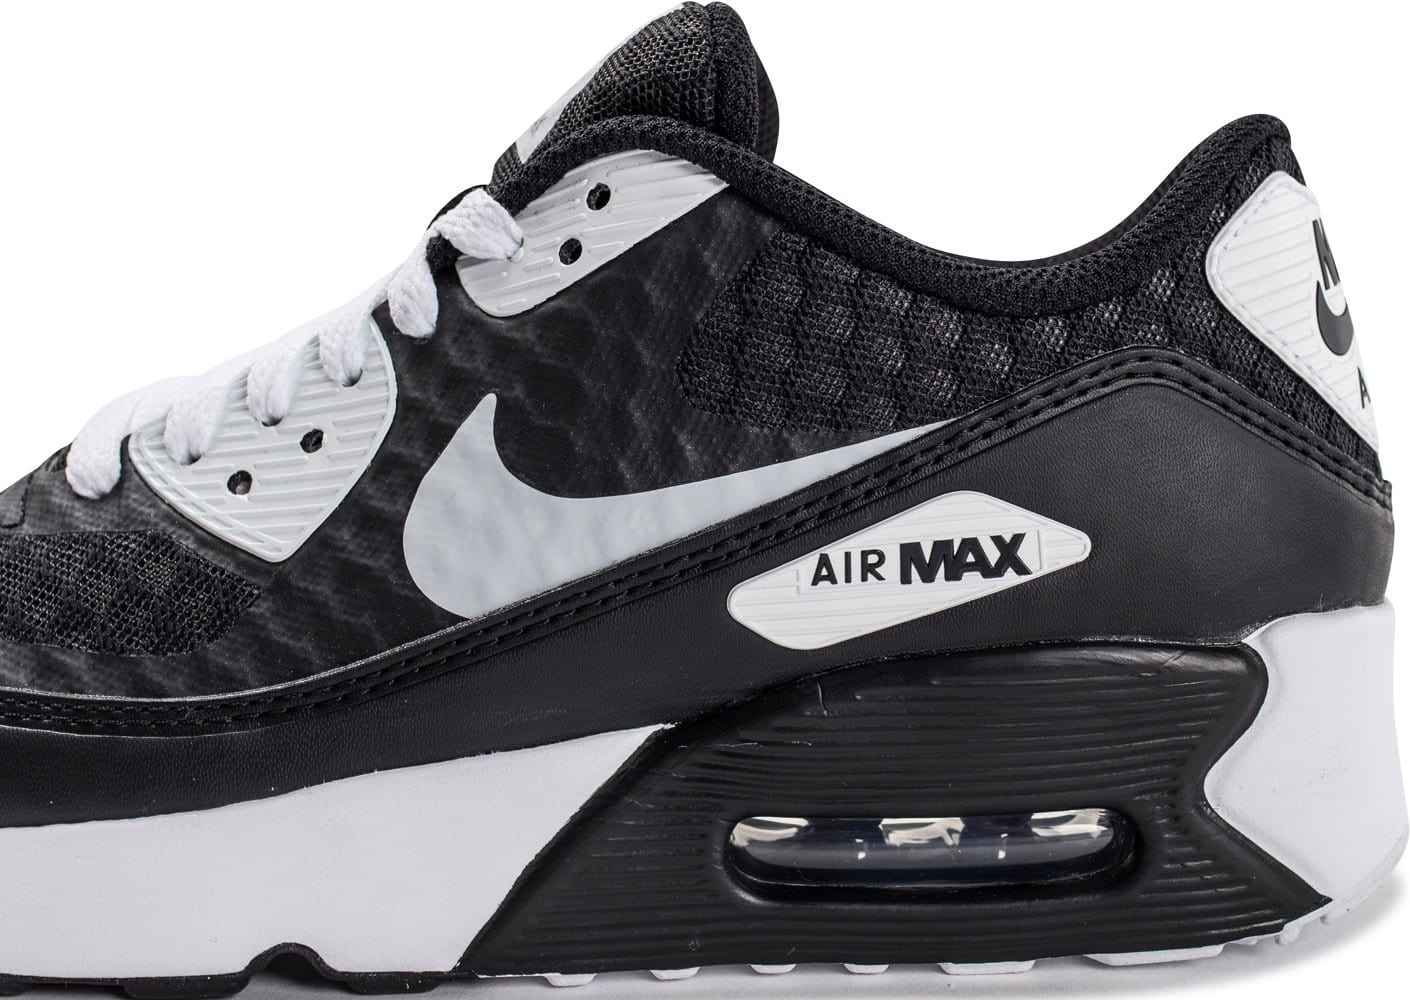 new styles 09c7f e2080 ... Chaussures Nike Air Max 90 Ultra 2.0 BR Junior noire et blanche vue  dessus